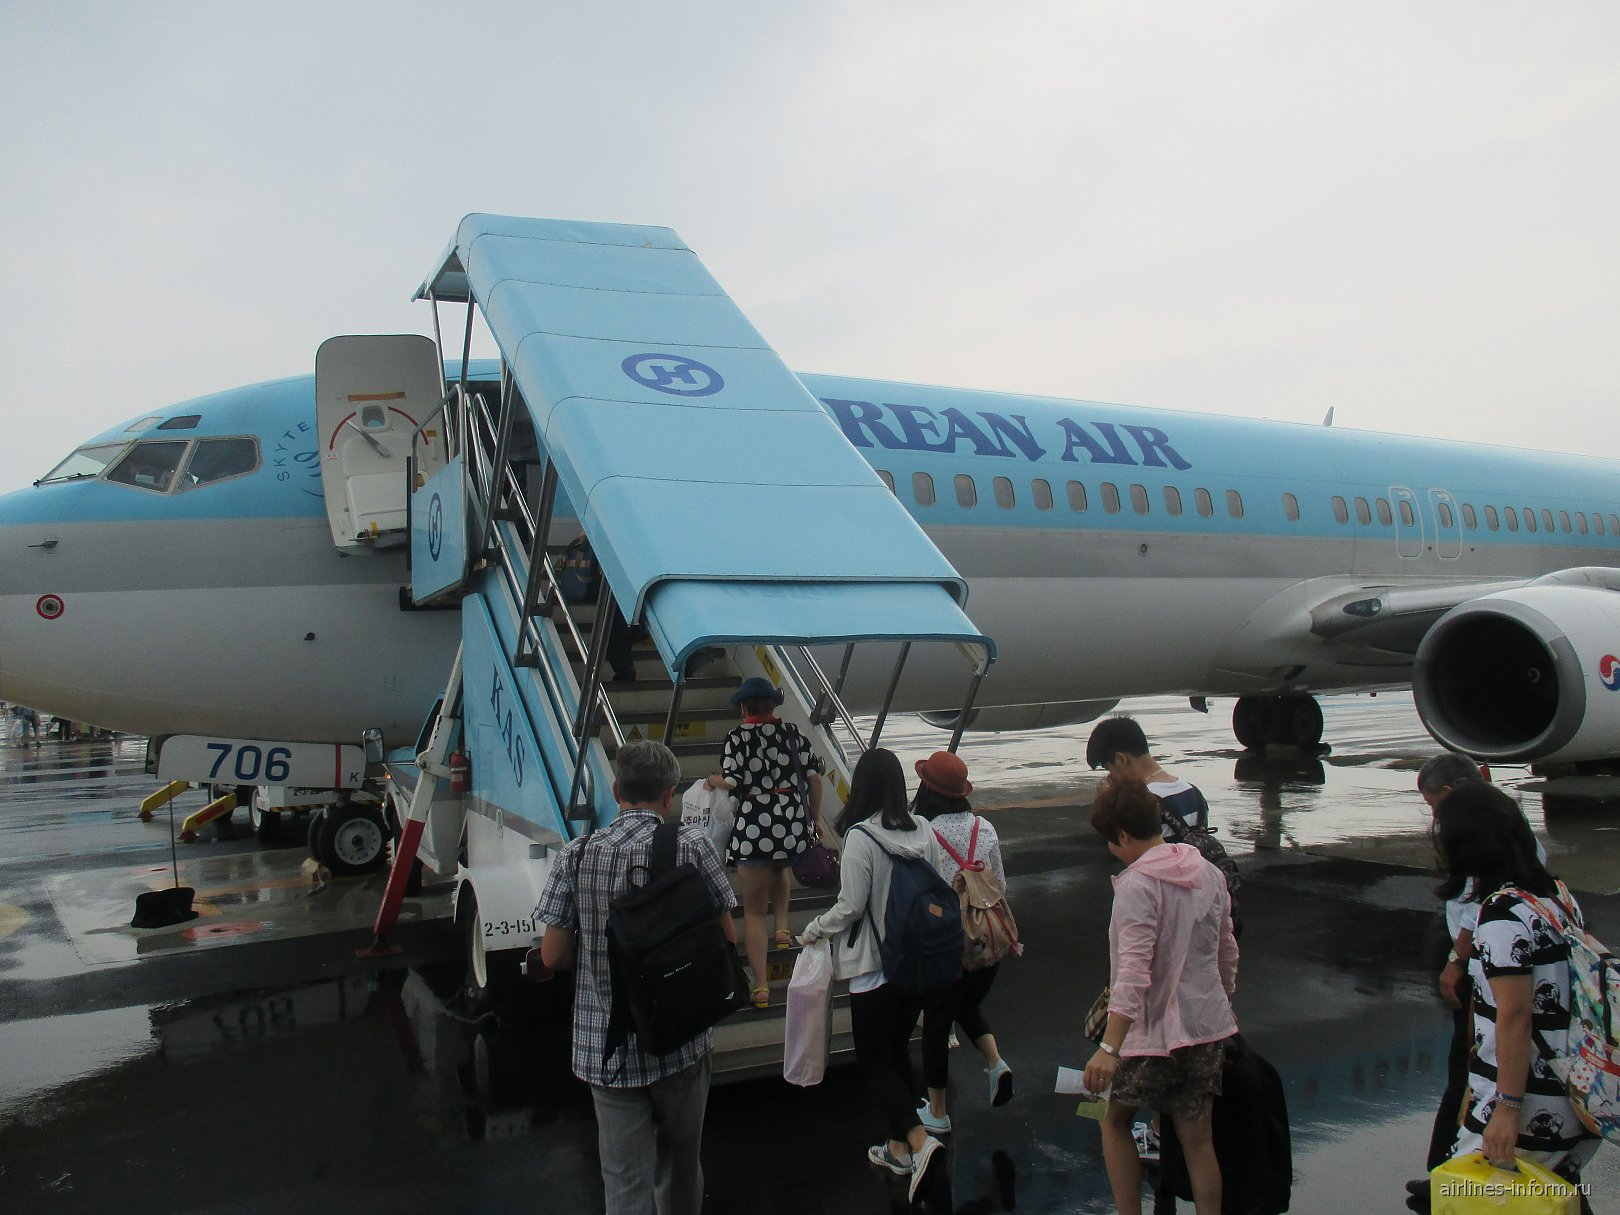 Отпуск в Корее. Часть 2 - Jeju - Seoul (Gimpo) c Korean Air на B-737-900